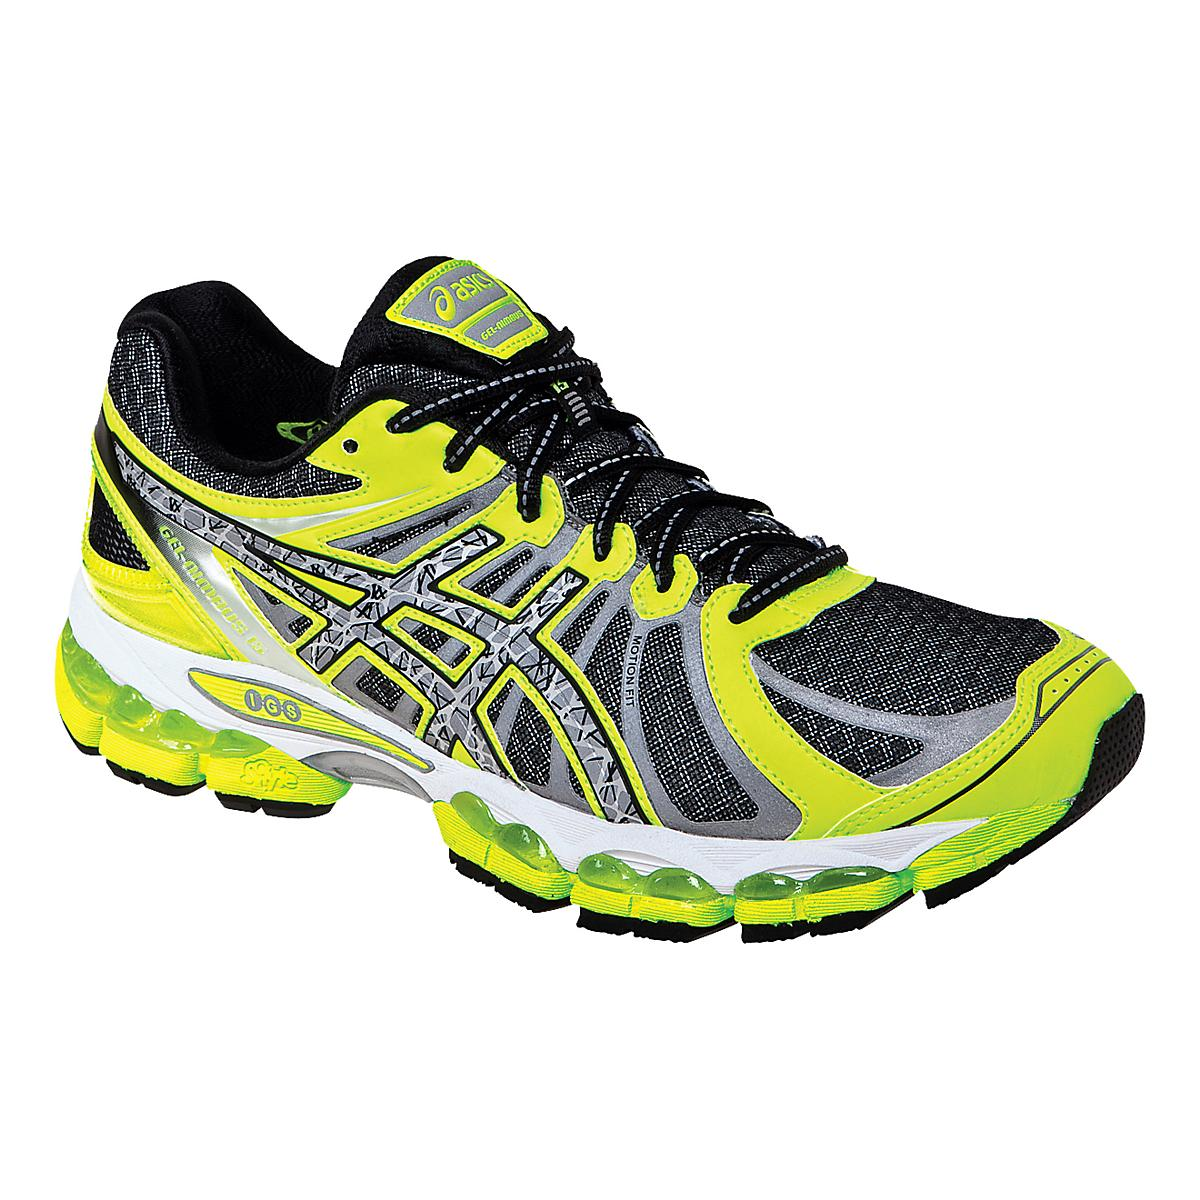 Zapatillas asics running 2014 zapatillas running asics gel - Zapatillas Asics Running 2014 Zapatillas Running Asics Gel 34